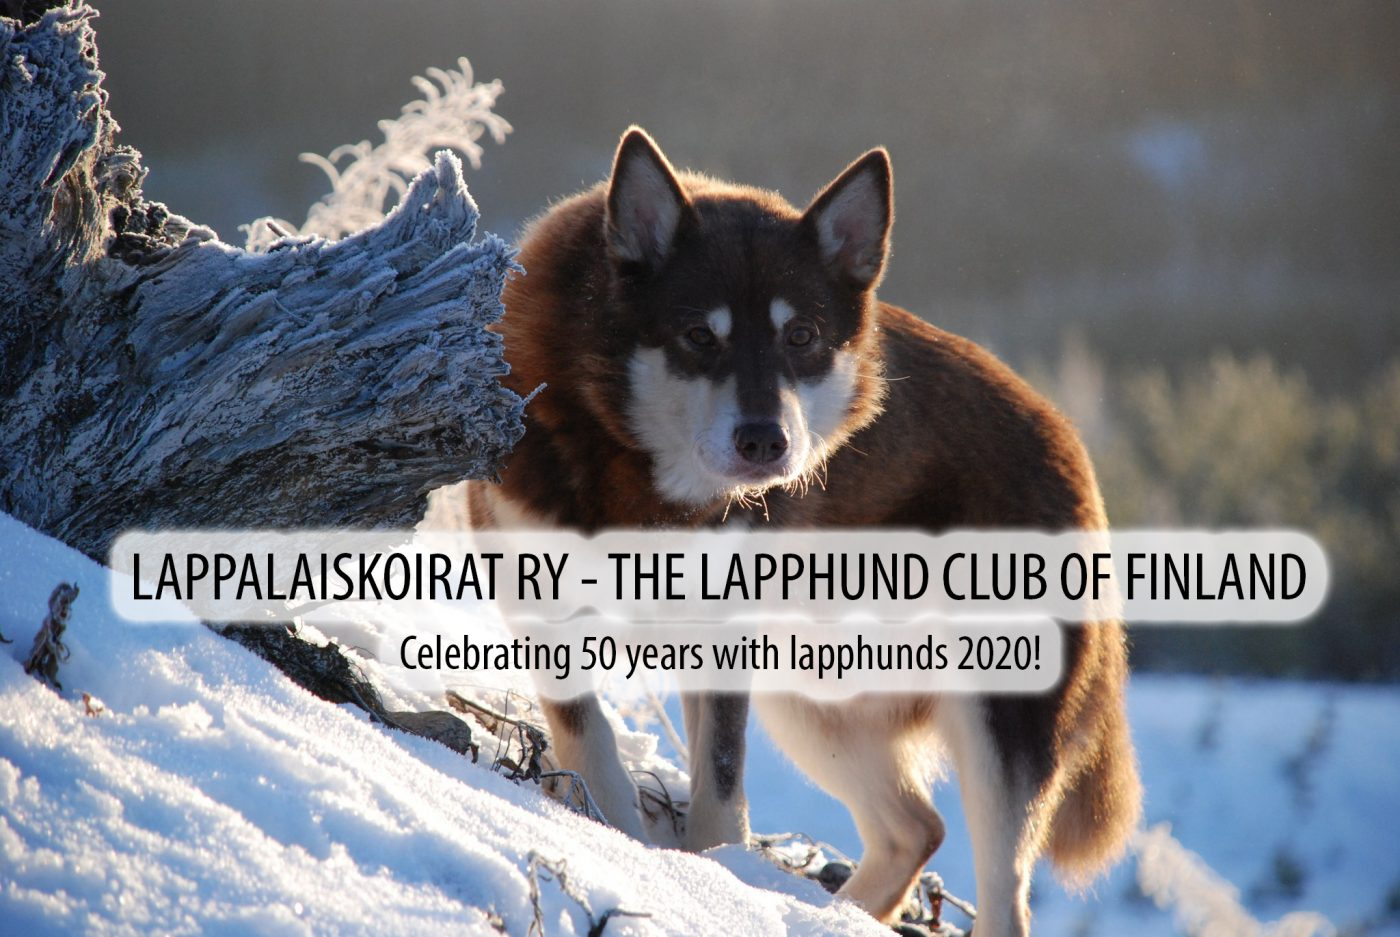 Lappalaiskoirat ry 50 vuotta- The Lapphund Club Of Finland 50th anniversary